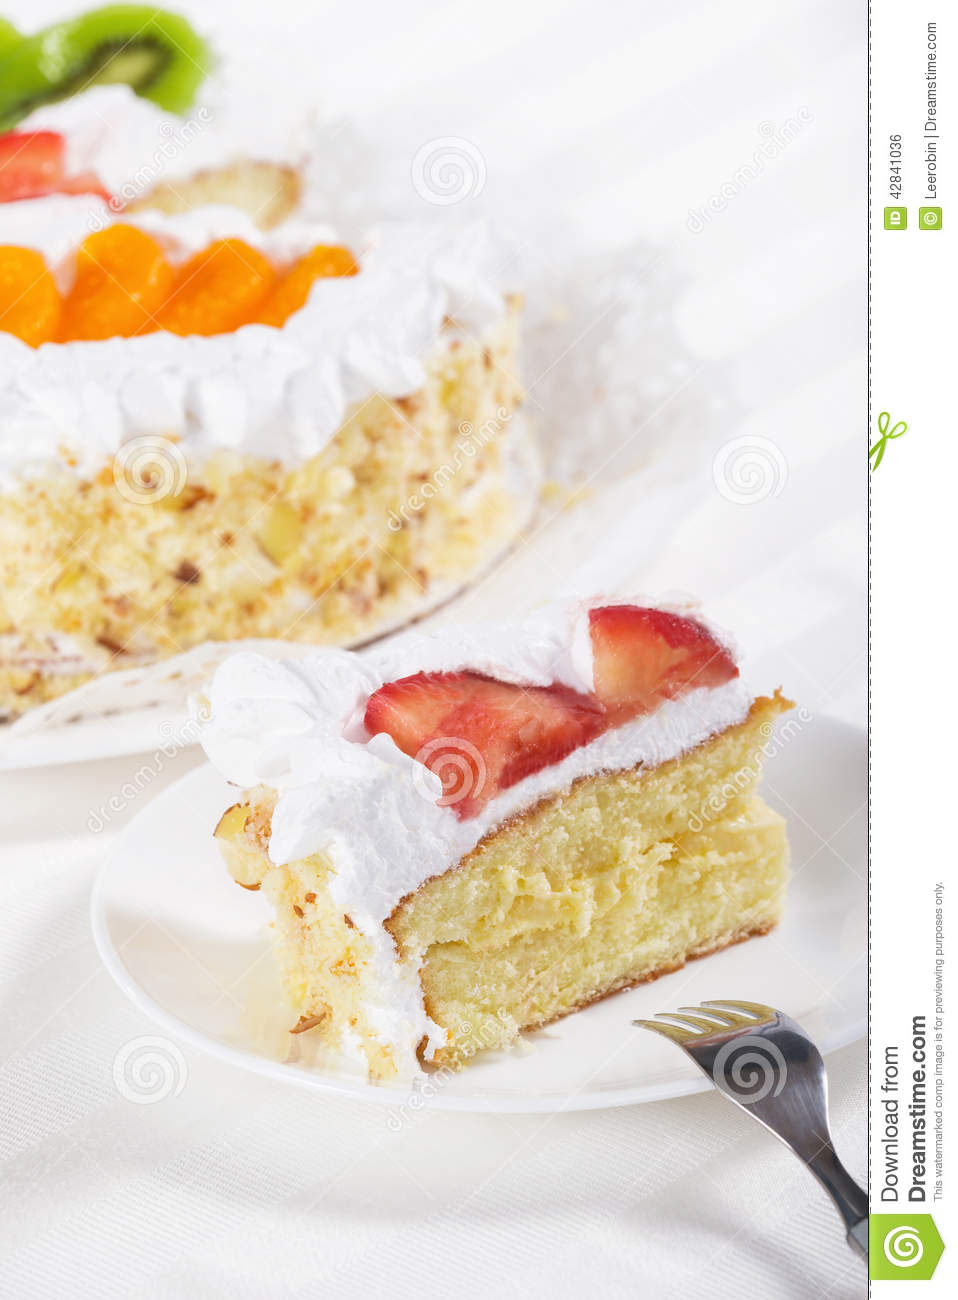 Slice Of Fruit Flan Cake Stock Photo - Image: 42841036